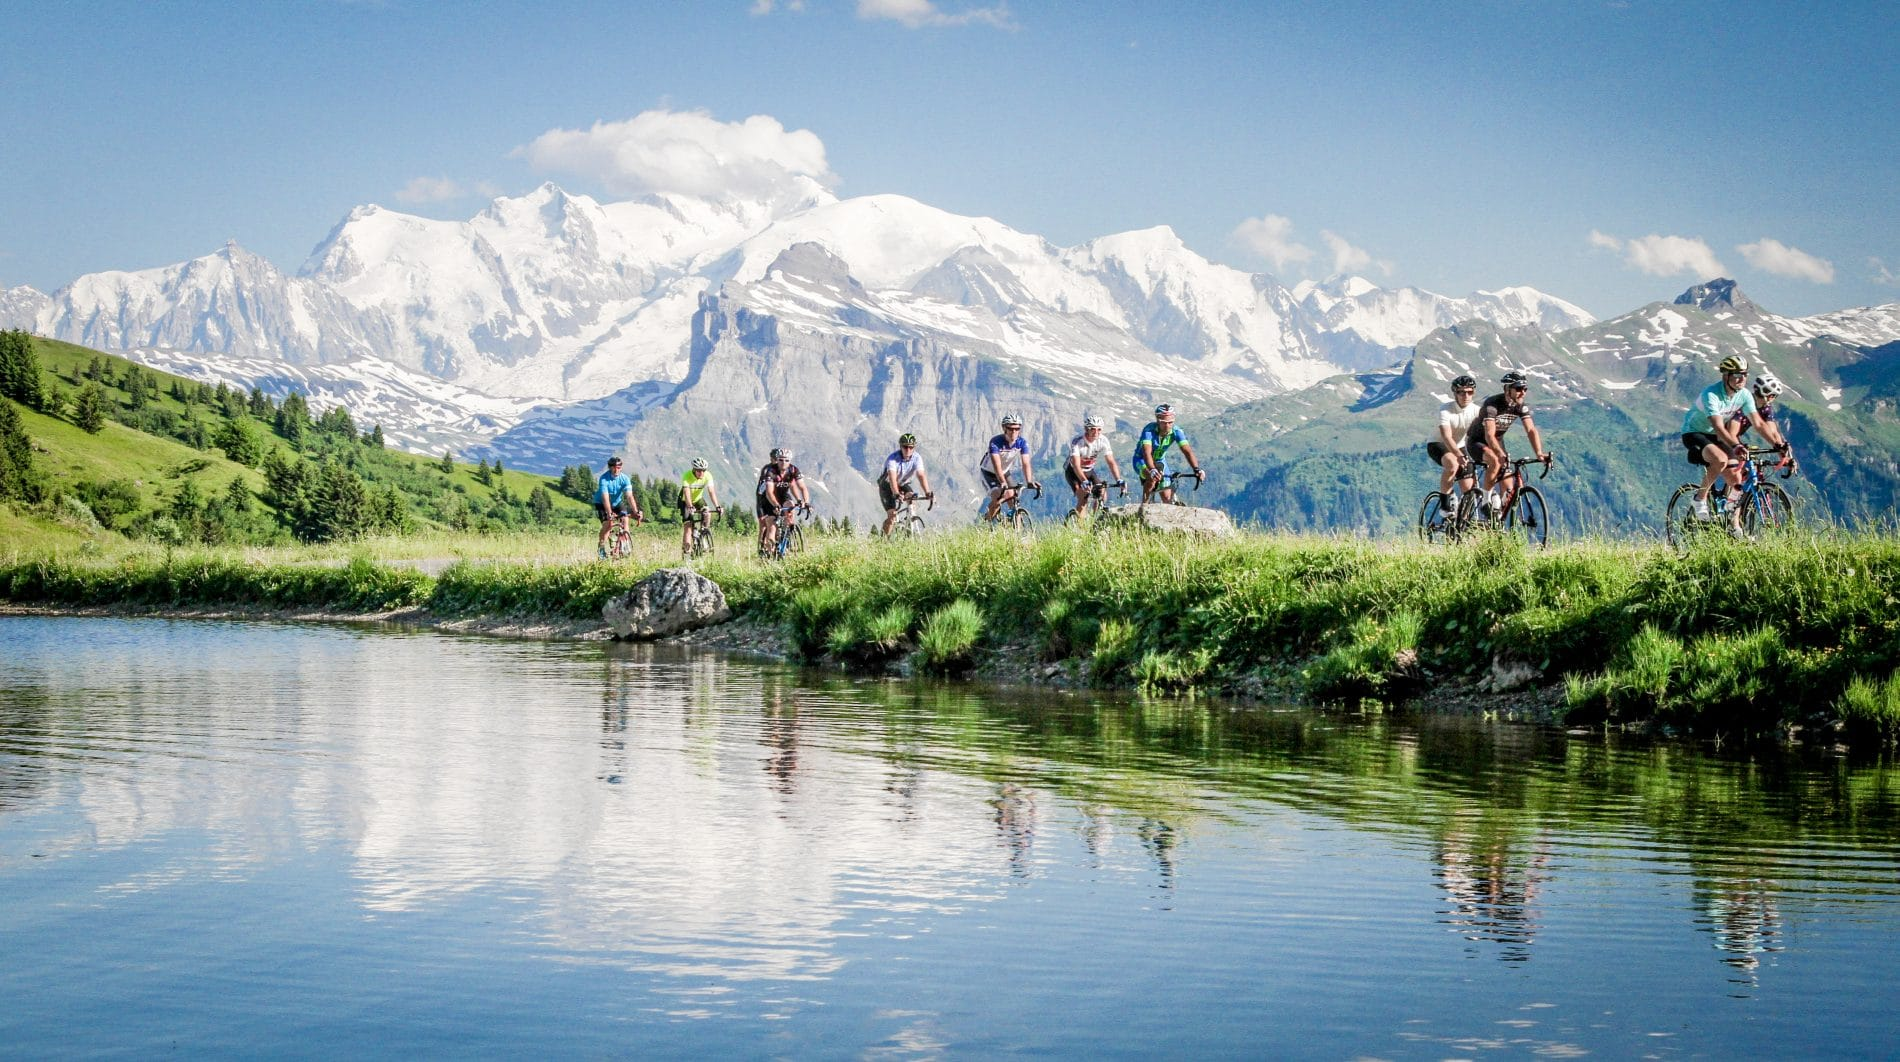 Velovation guests enjoying the stunning views of Mont Blanc from the Col de Joux Plane on their cycling holiday